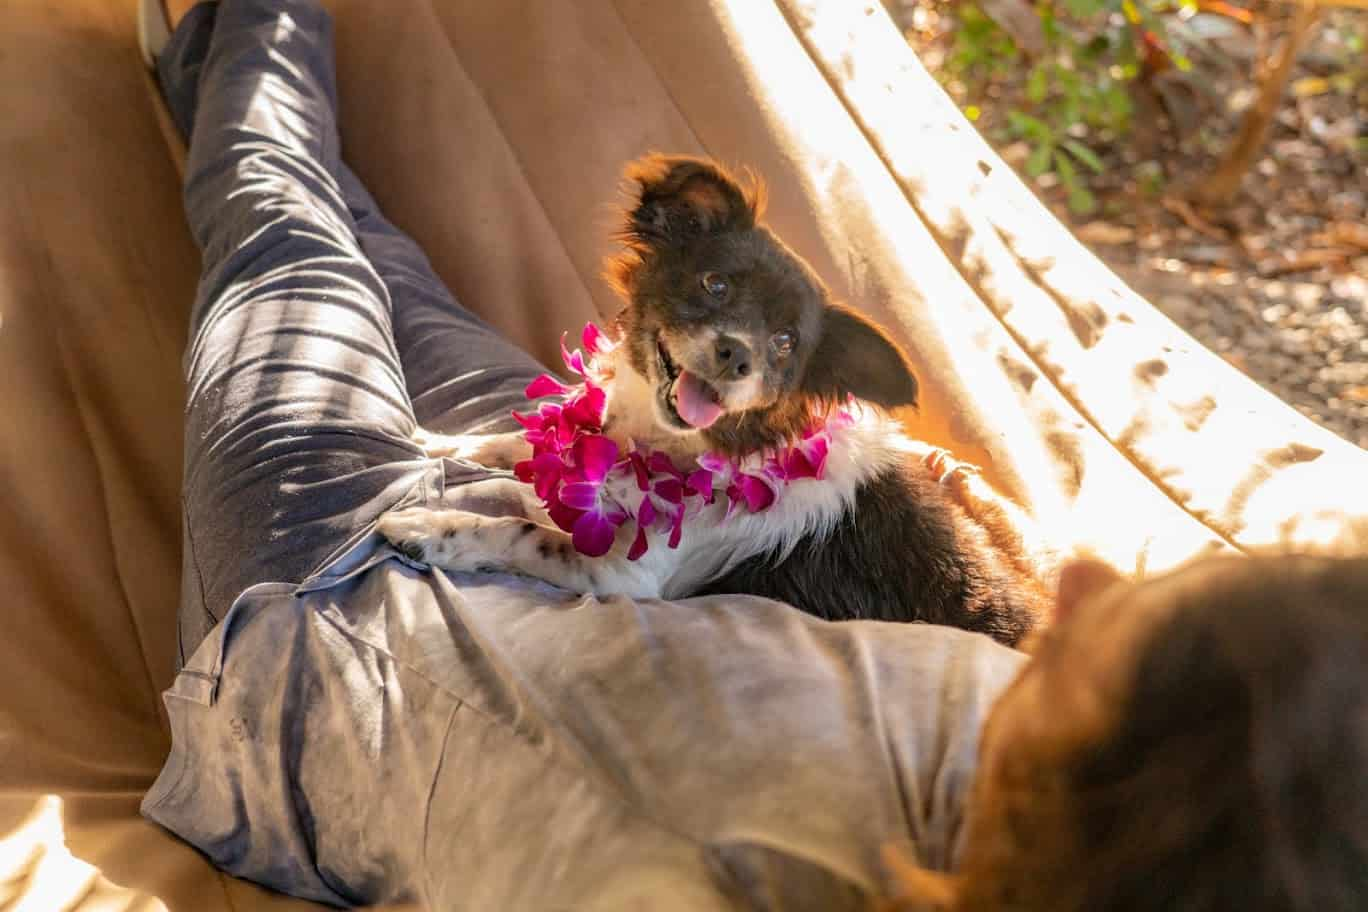 A small black and white dog wearing a pink lei relaxes in a hammock with a model